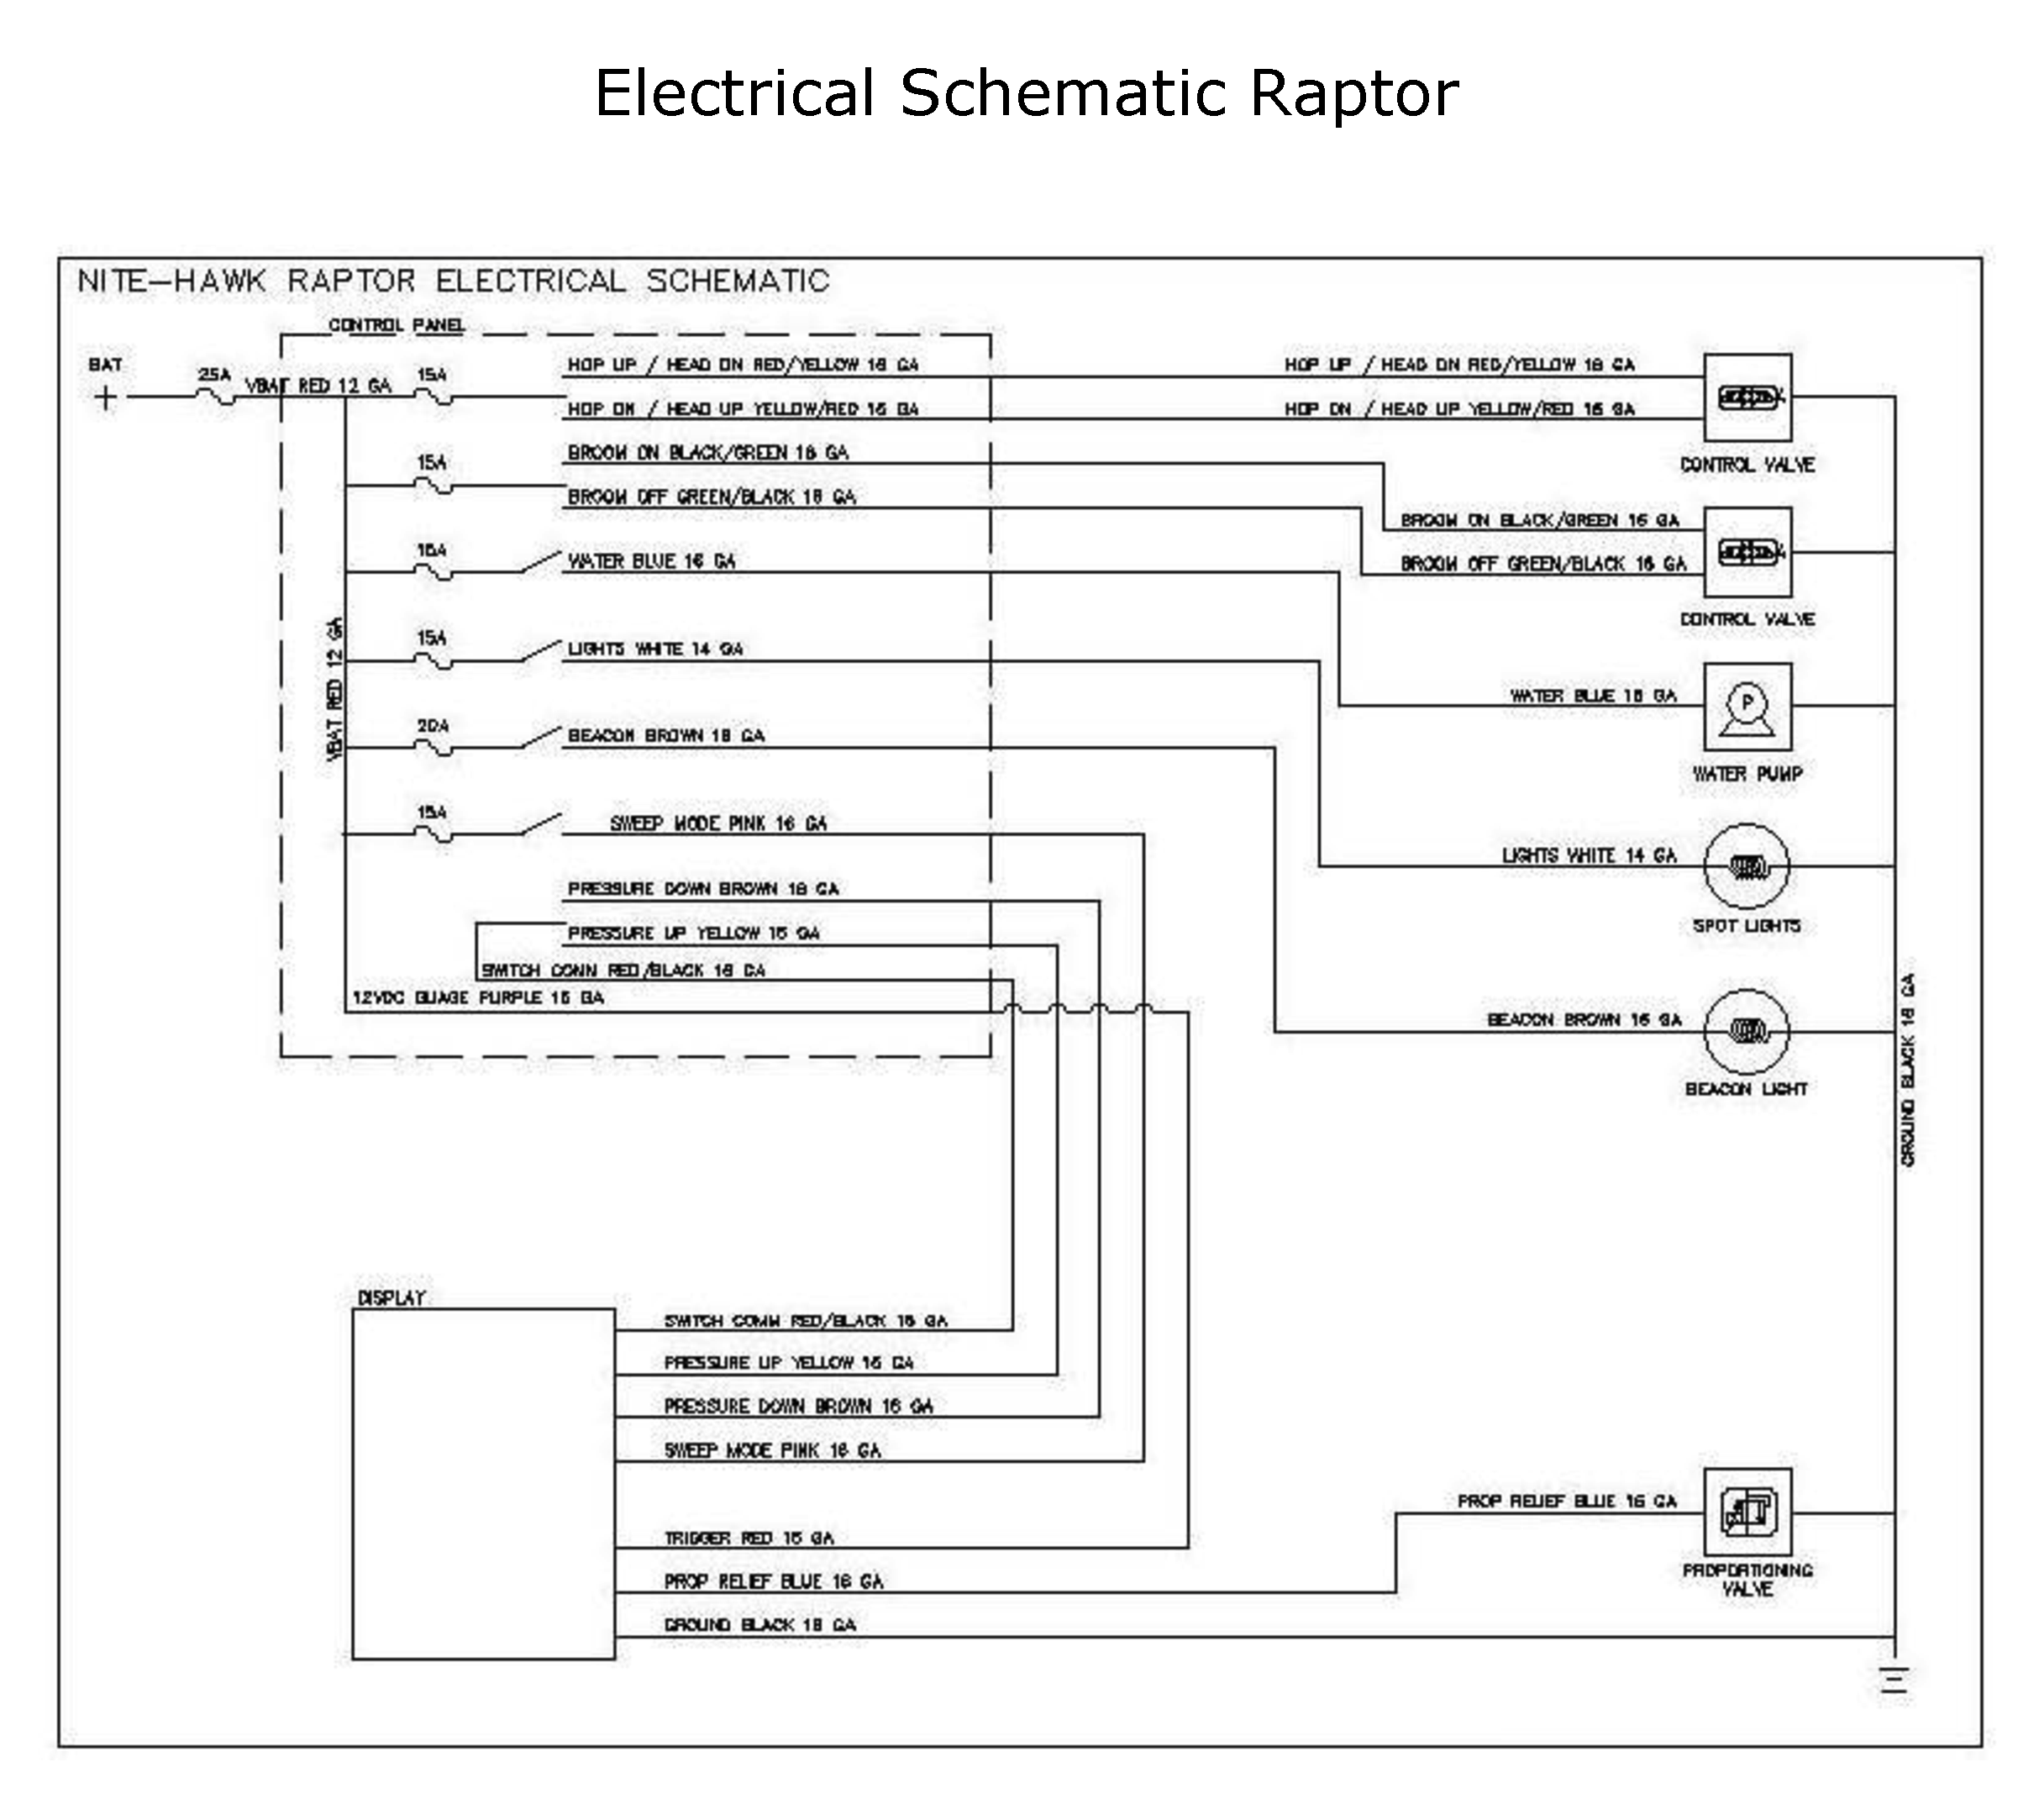 raptor electrical schematic rh buysweeperparts com electrical schematic interpretation test electrical schematic interpretation